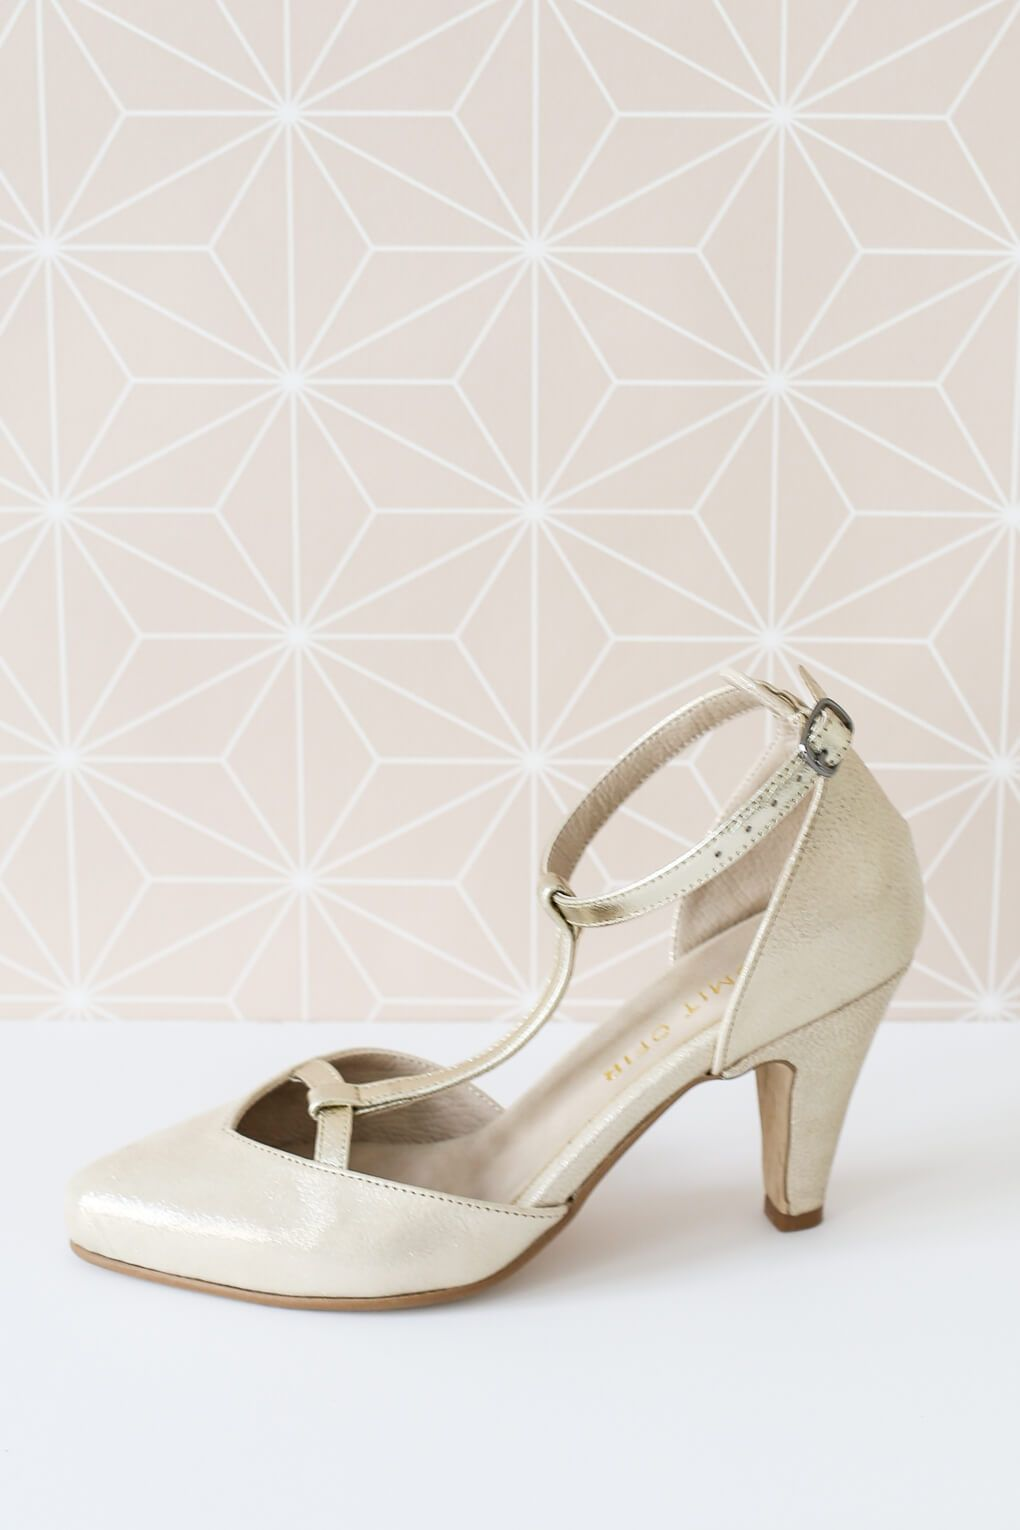 Sophie Shoes In Gold Shlomit Ofir Sophie Shoes Shoes Heels